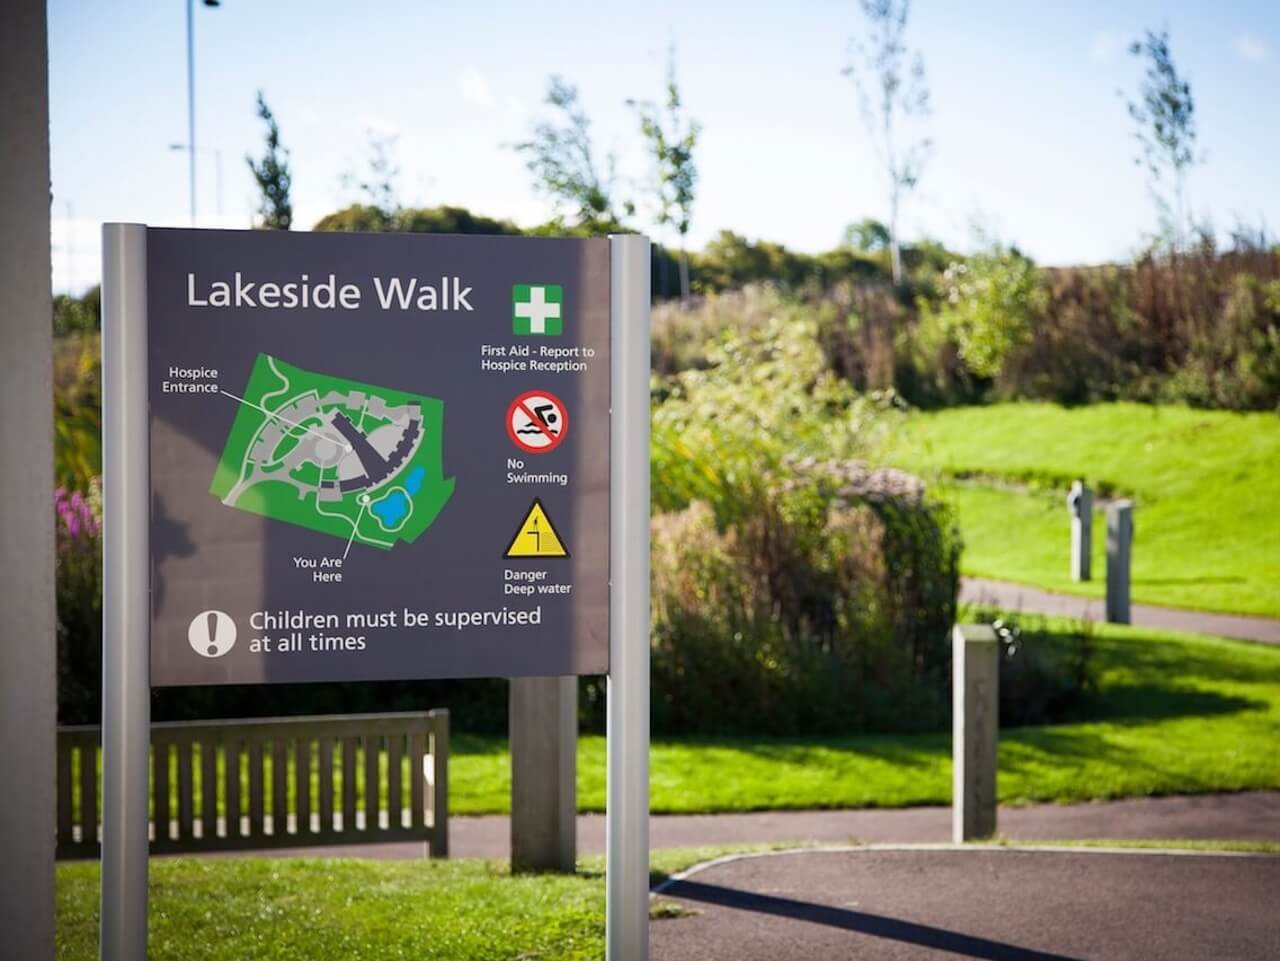 External healthcare wayfinding and signage with a map of the hospice grounds